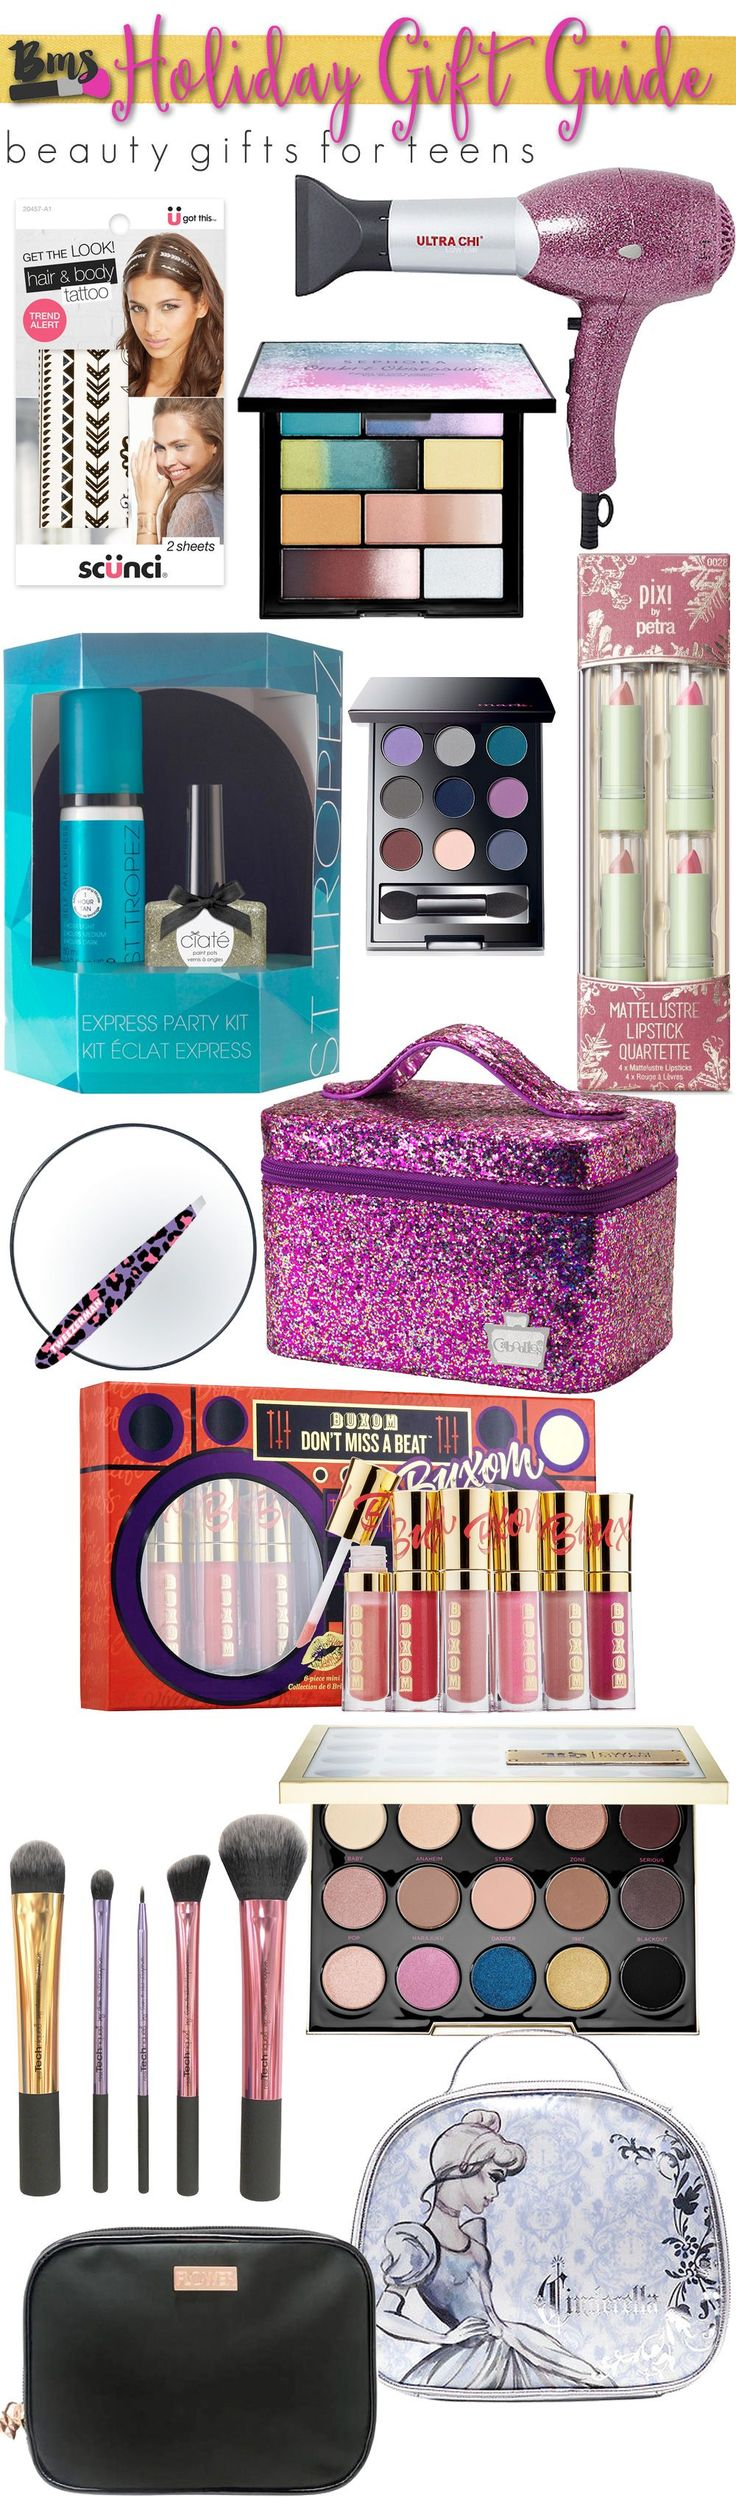 Holiday Gift Guide: Best Beauty Gifts for Teens